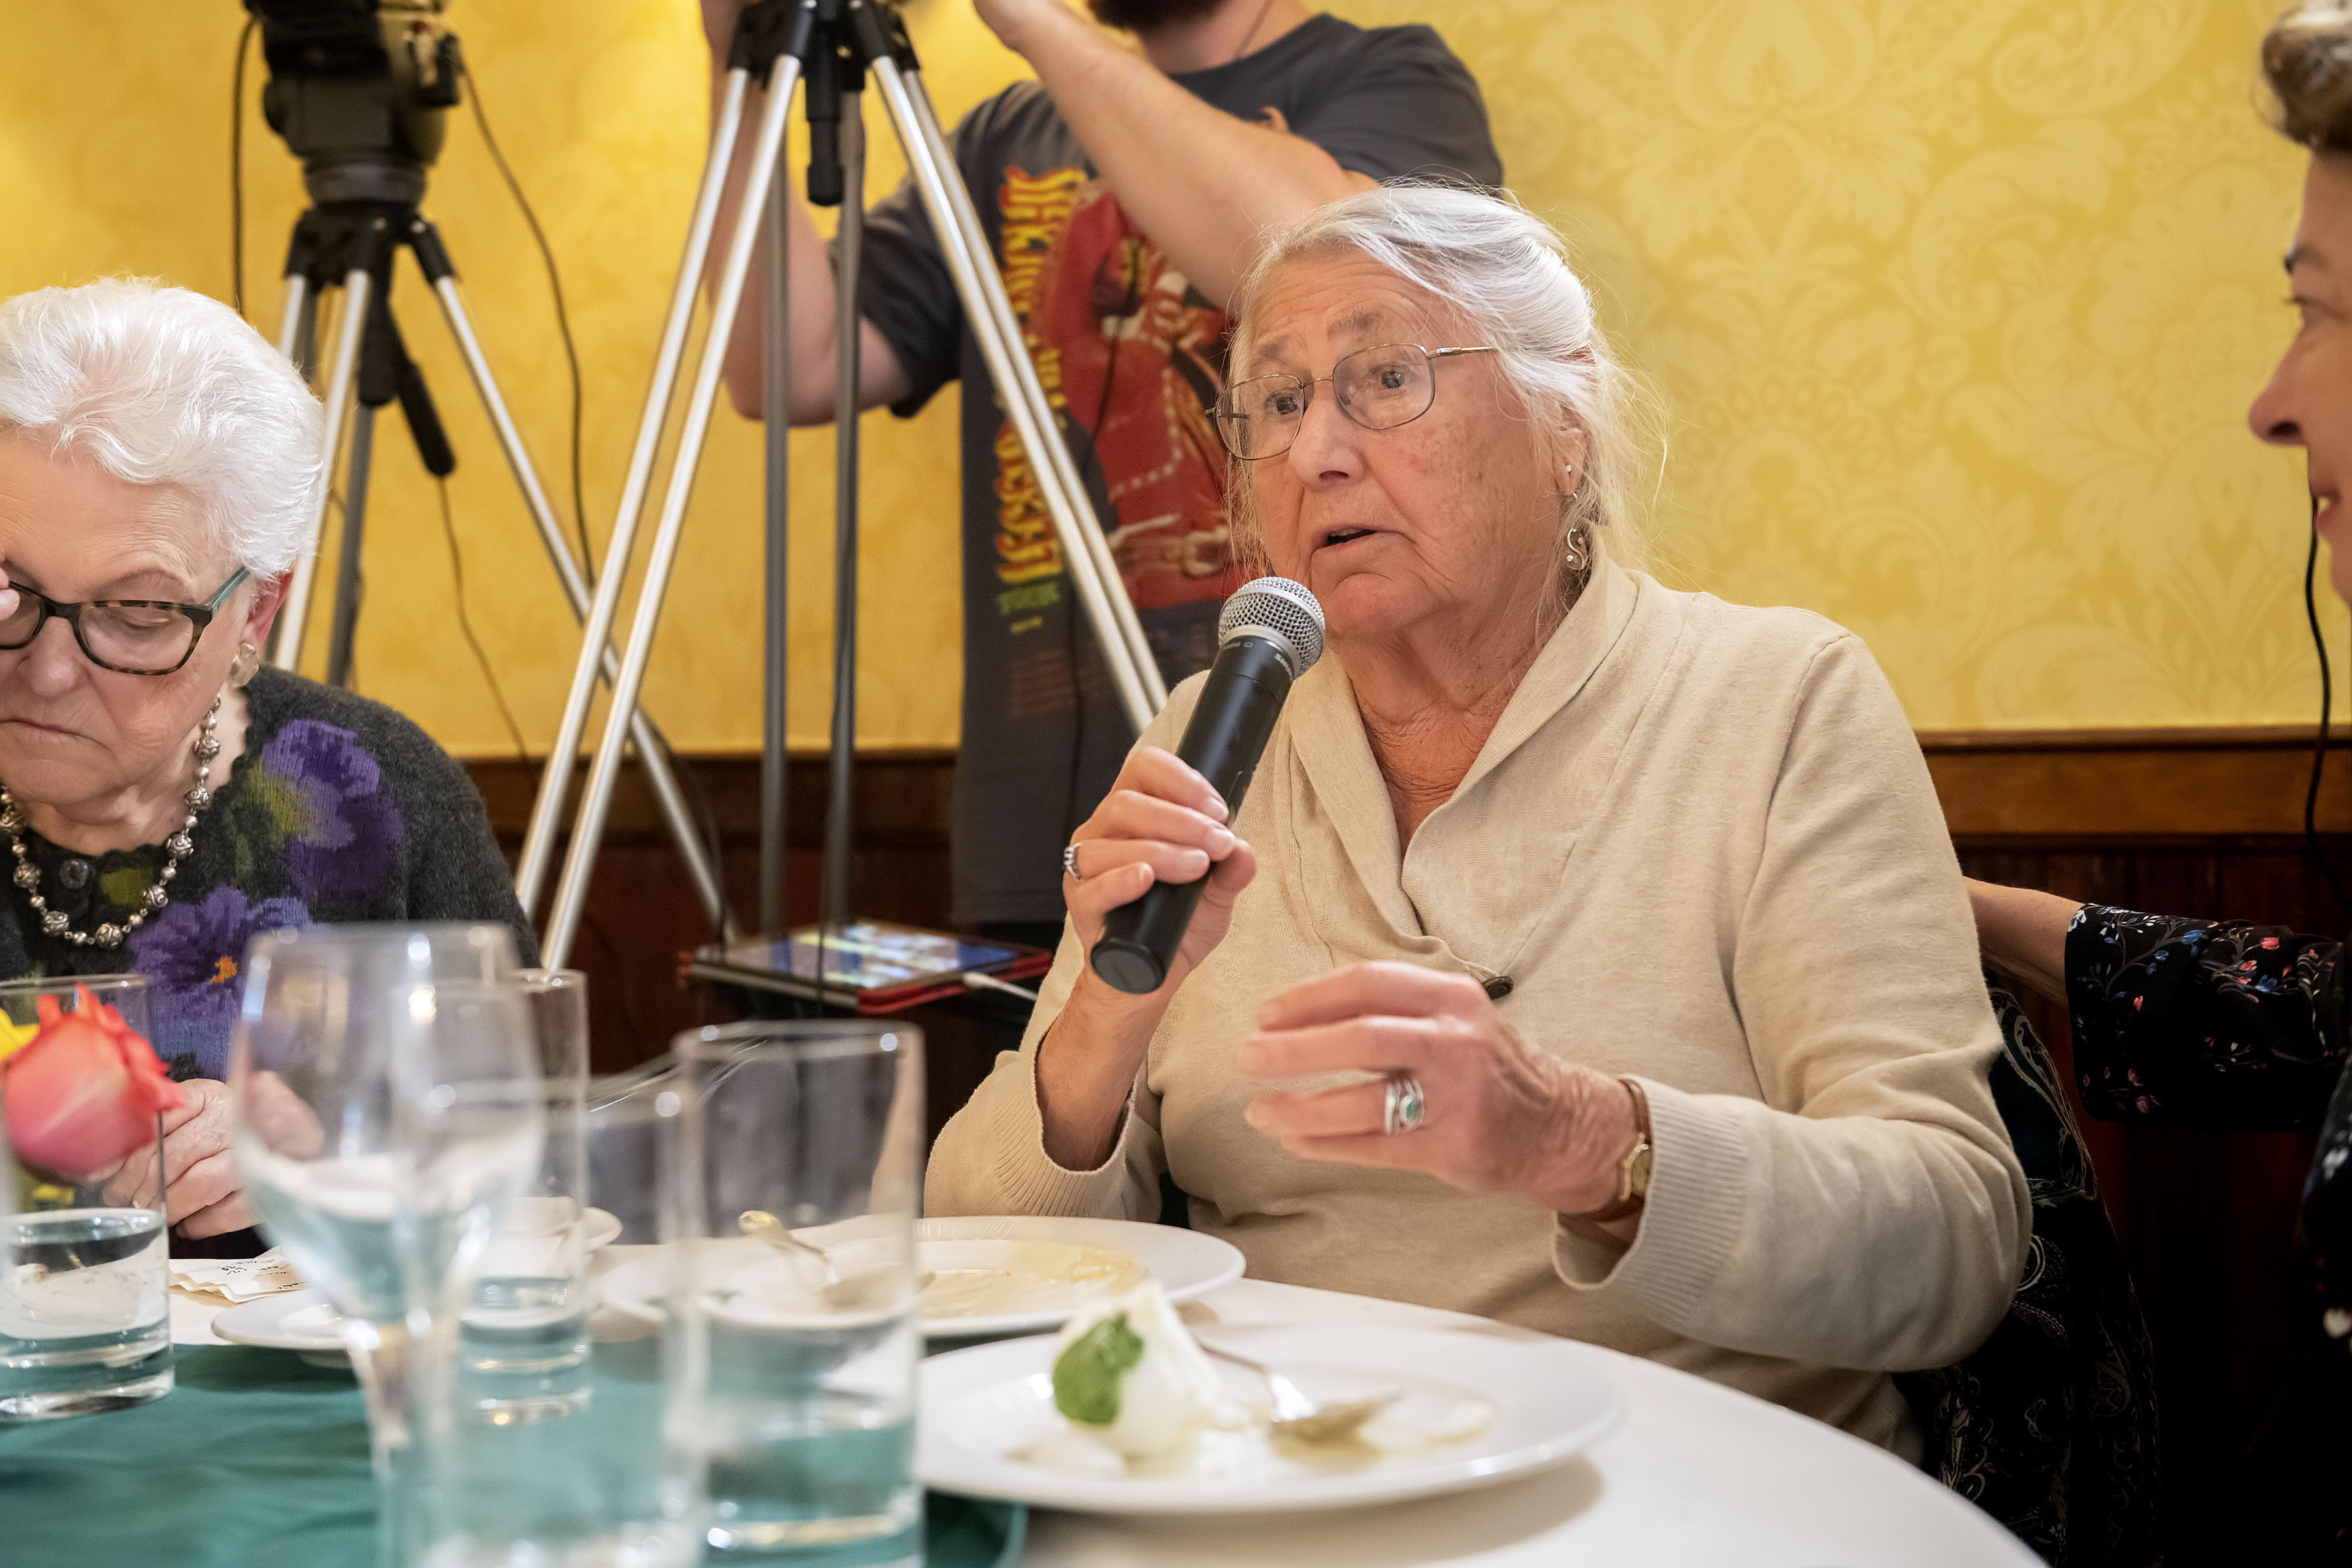 Nada Barry poses a question to the panel during the Express Sessions - Sag Harbor Public Spaces event at the American Hotel in Sag Harbor on Friday.  MICHAEL HELLER